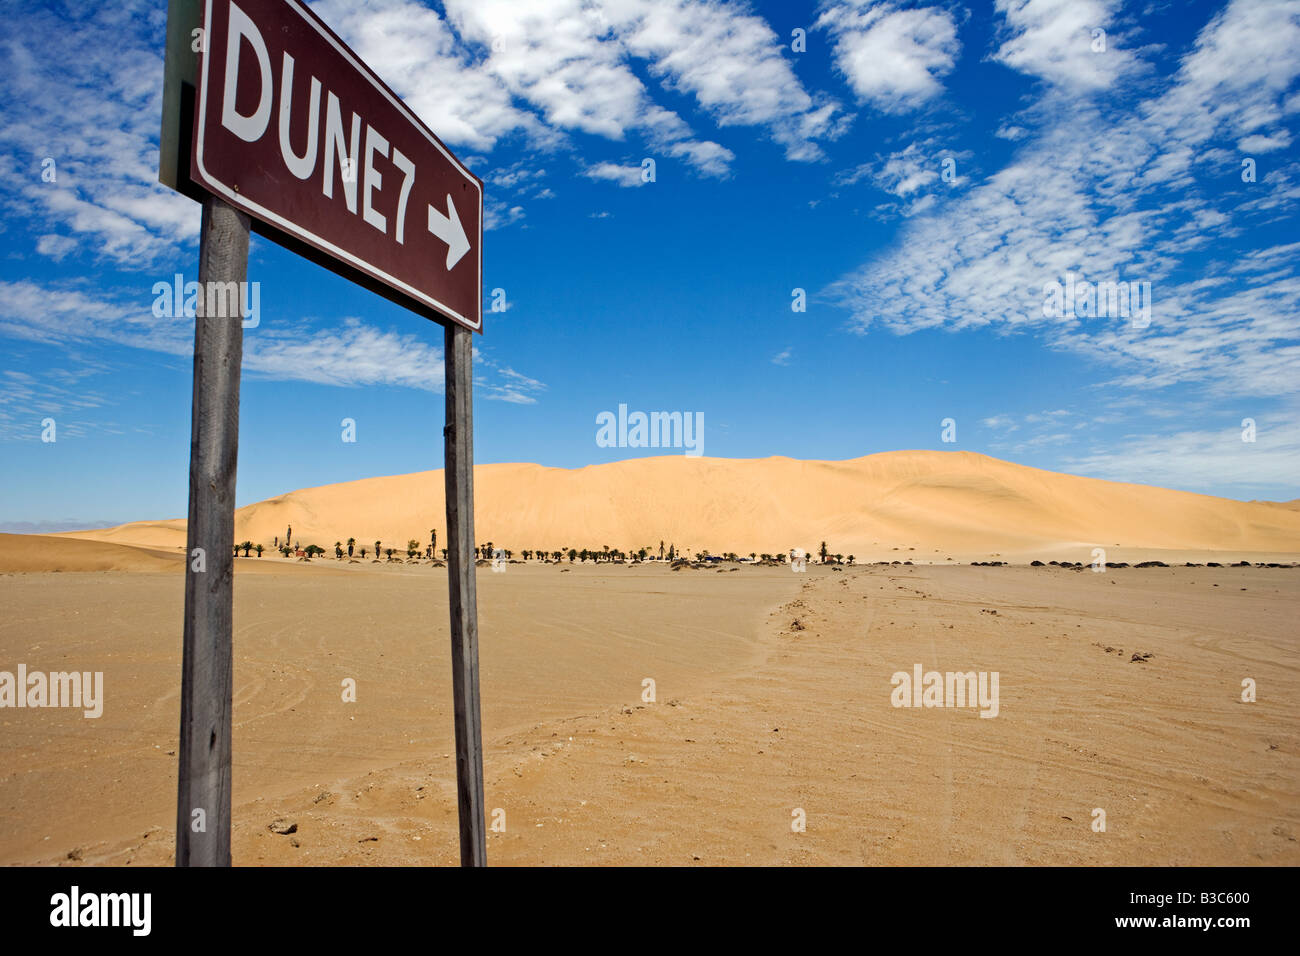 Namibia, Skeleton Coast, Walvis Bay. The sign to the popular tourist dune of Dune 7 located near to Walvis Bay and - Stock Image